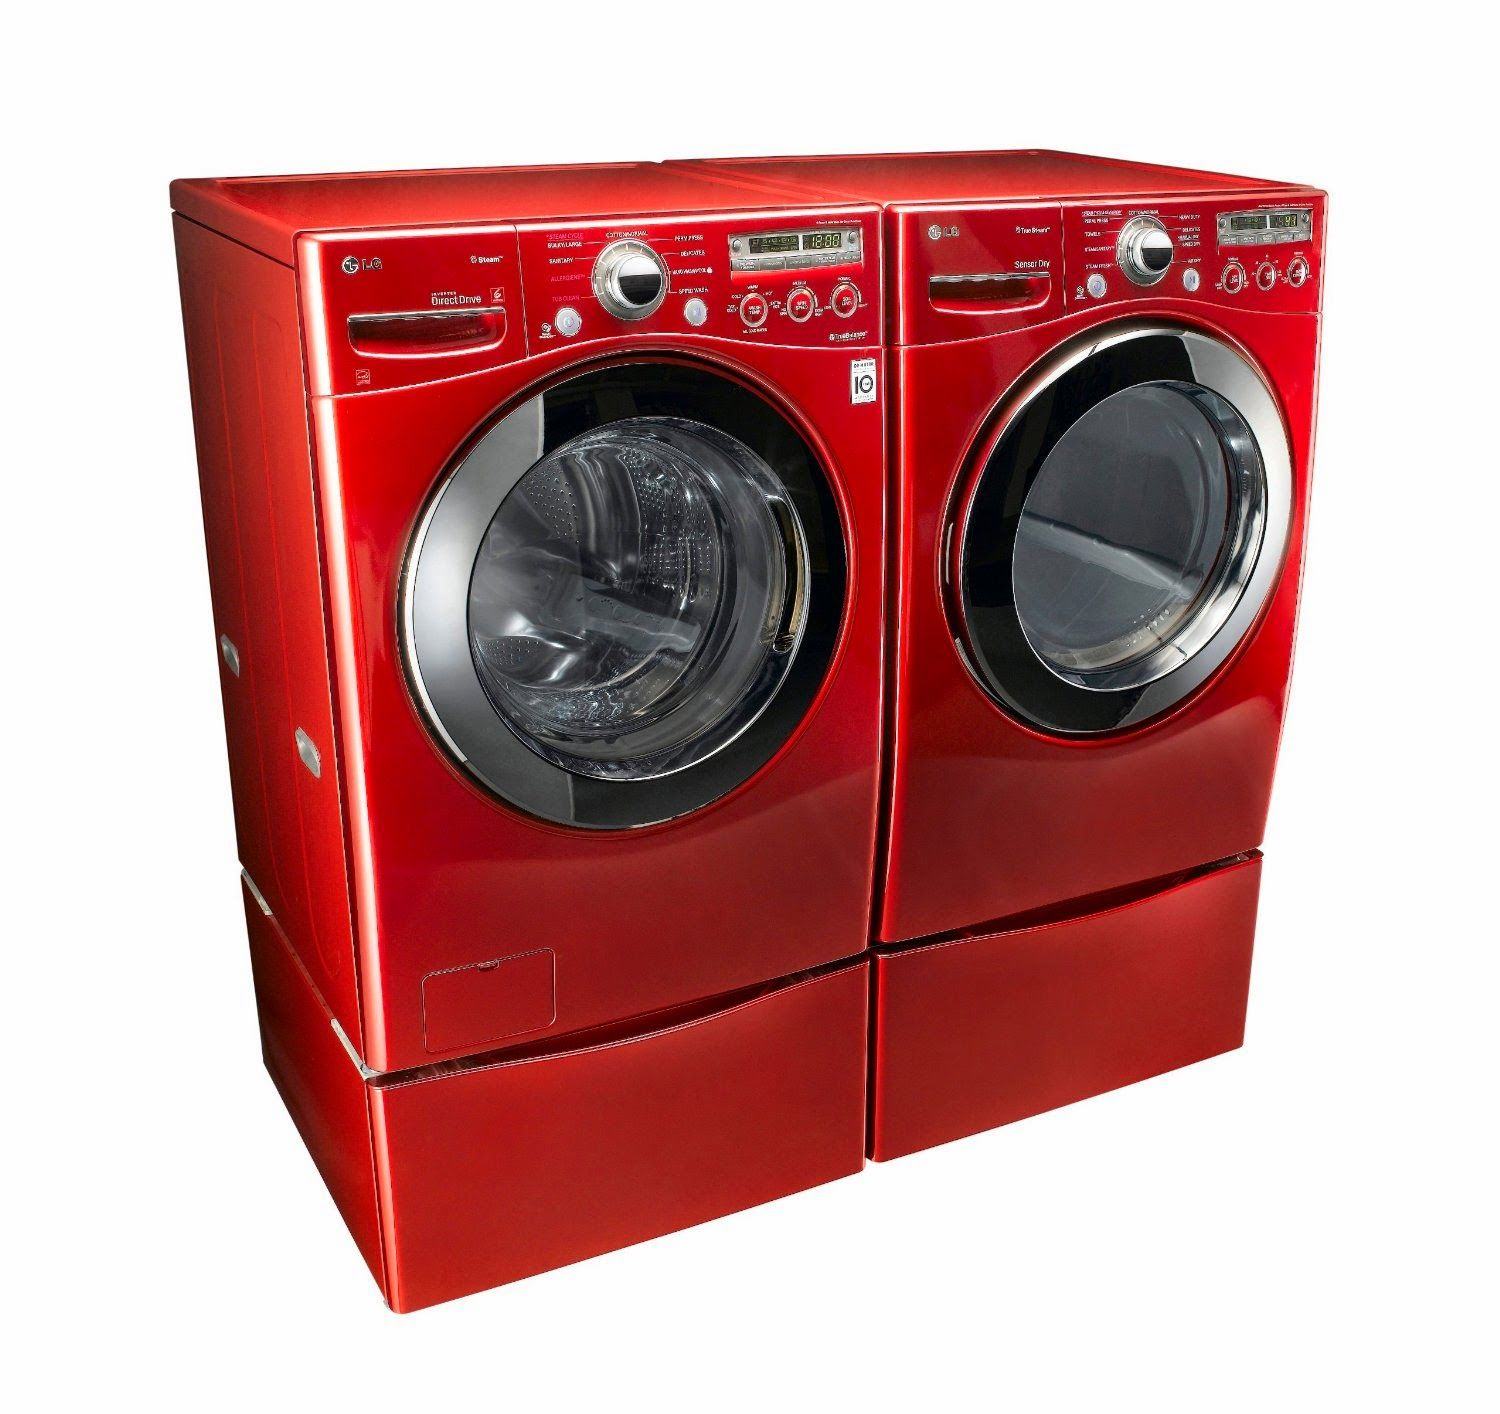 Lg Steam Washer And Steam Dryer Buy The Pair Dlex3250r Wm3250hra Lg Washer And Dryer Laundry Pedestal Whirlpool Washer And Dryer